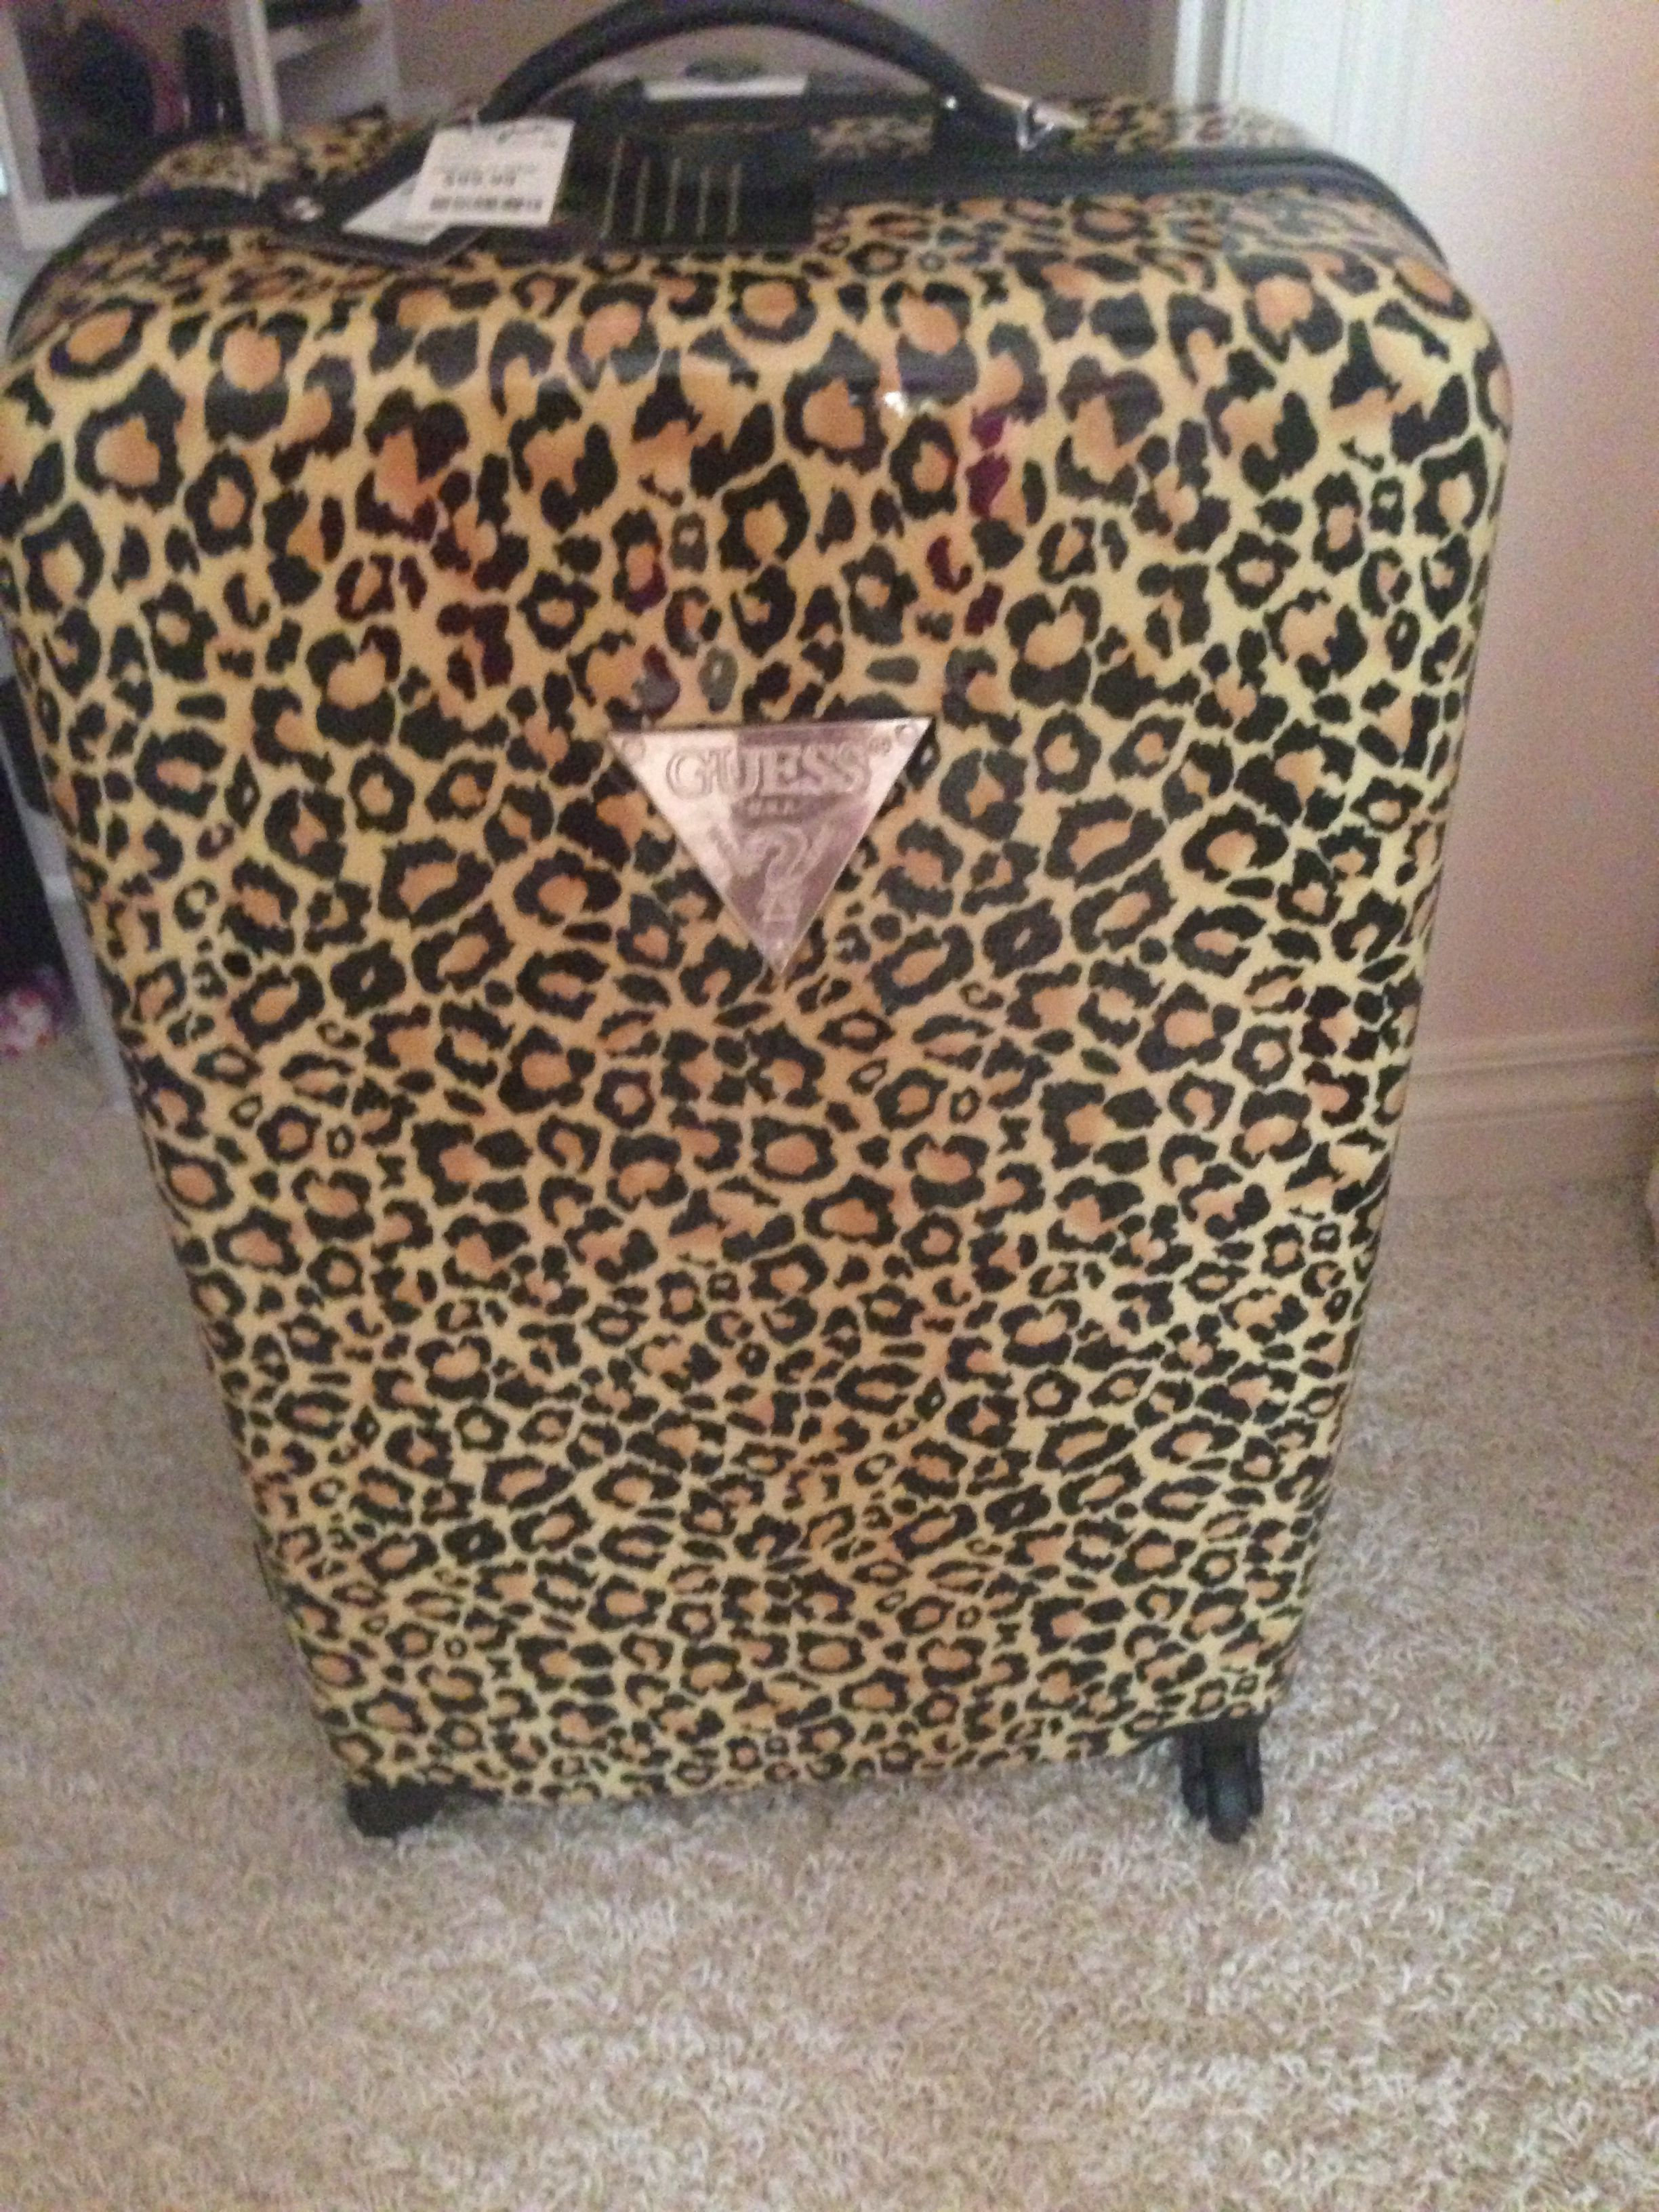 Leopard Guess Luggage Traveling In Style